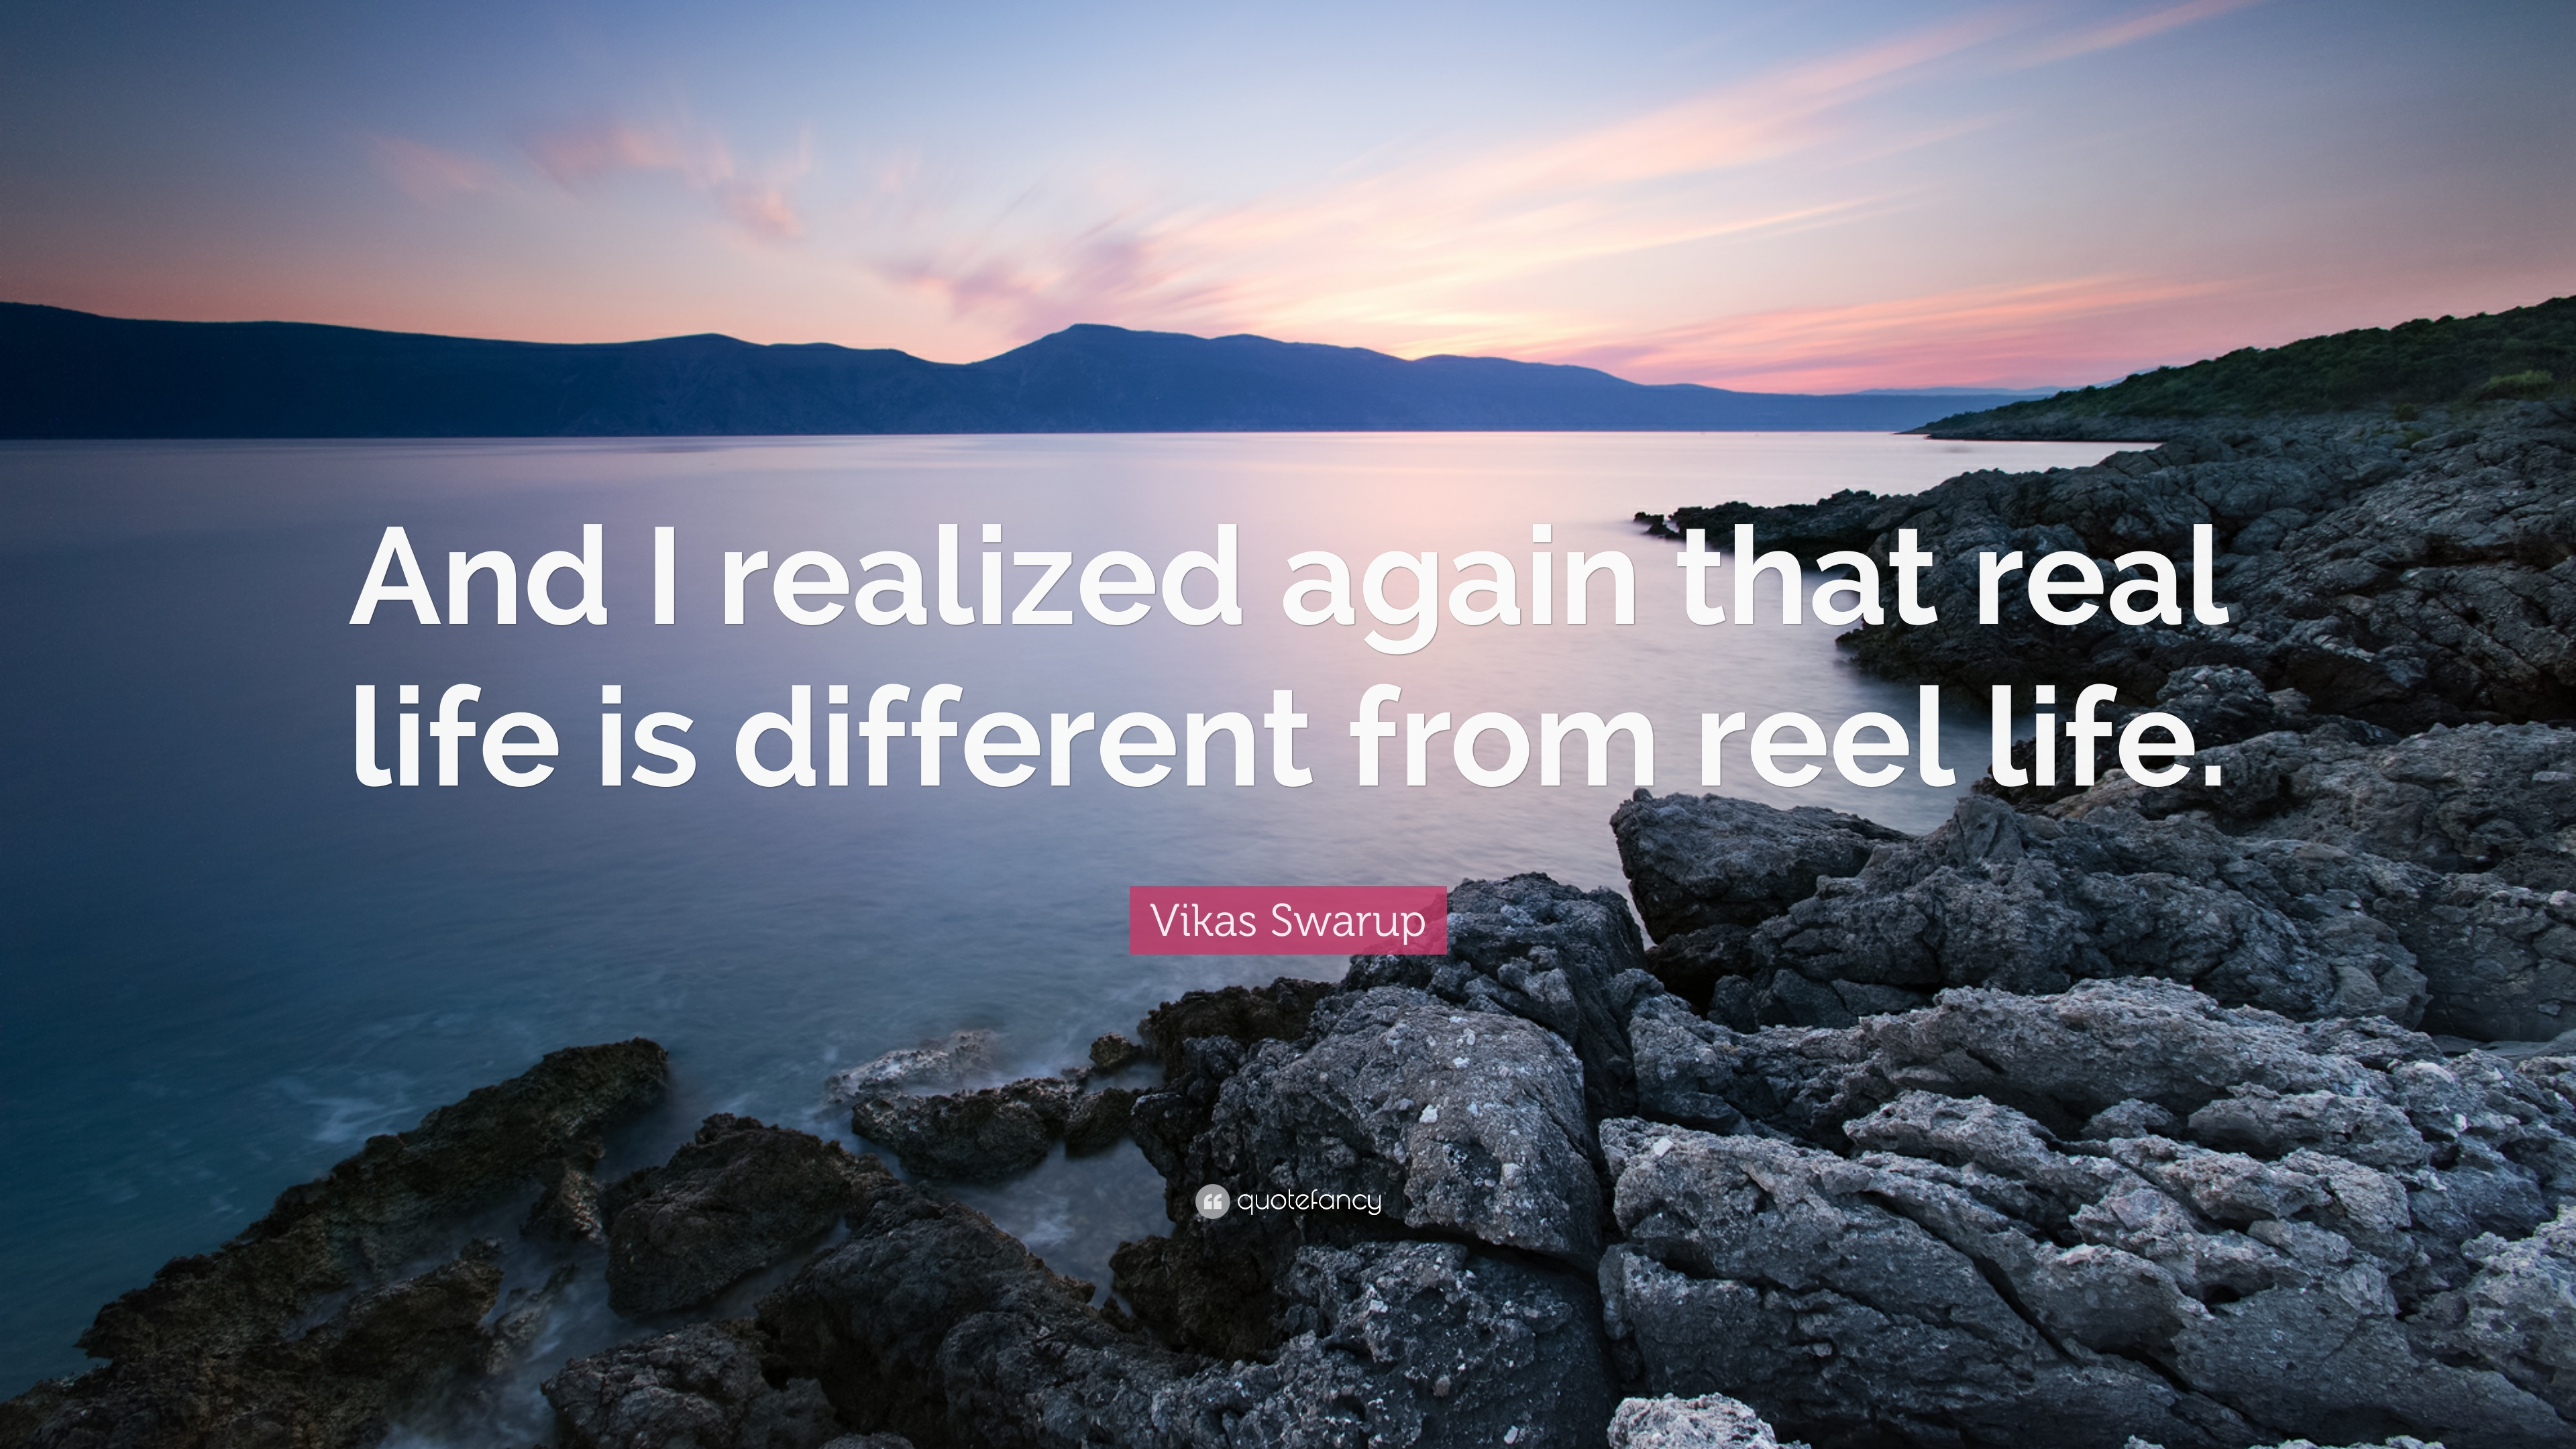 Vikas Swarup Quote And I Realized Again That Real Life Is Different From Reel Life 7 Wallpapers Quotefancy